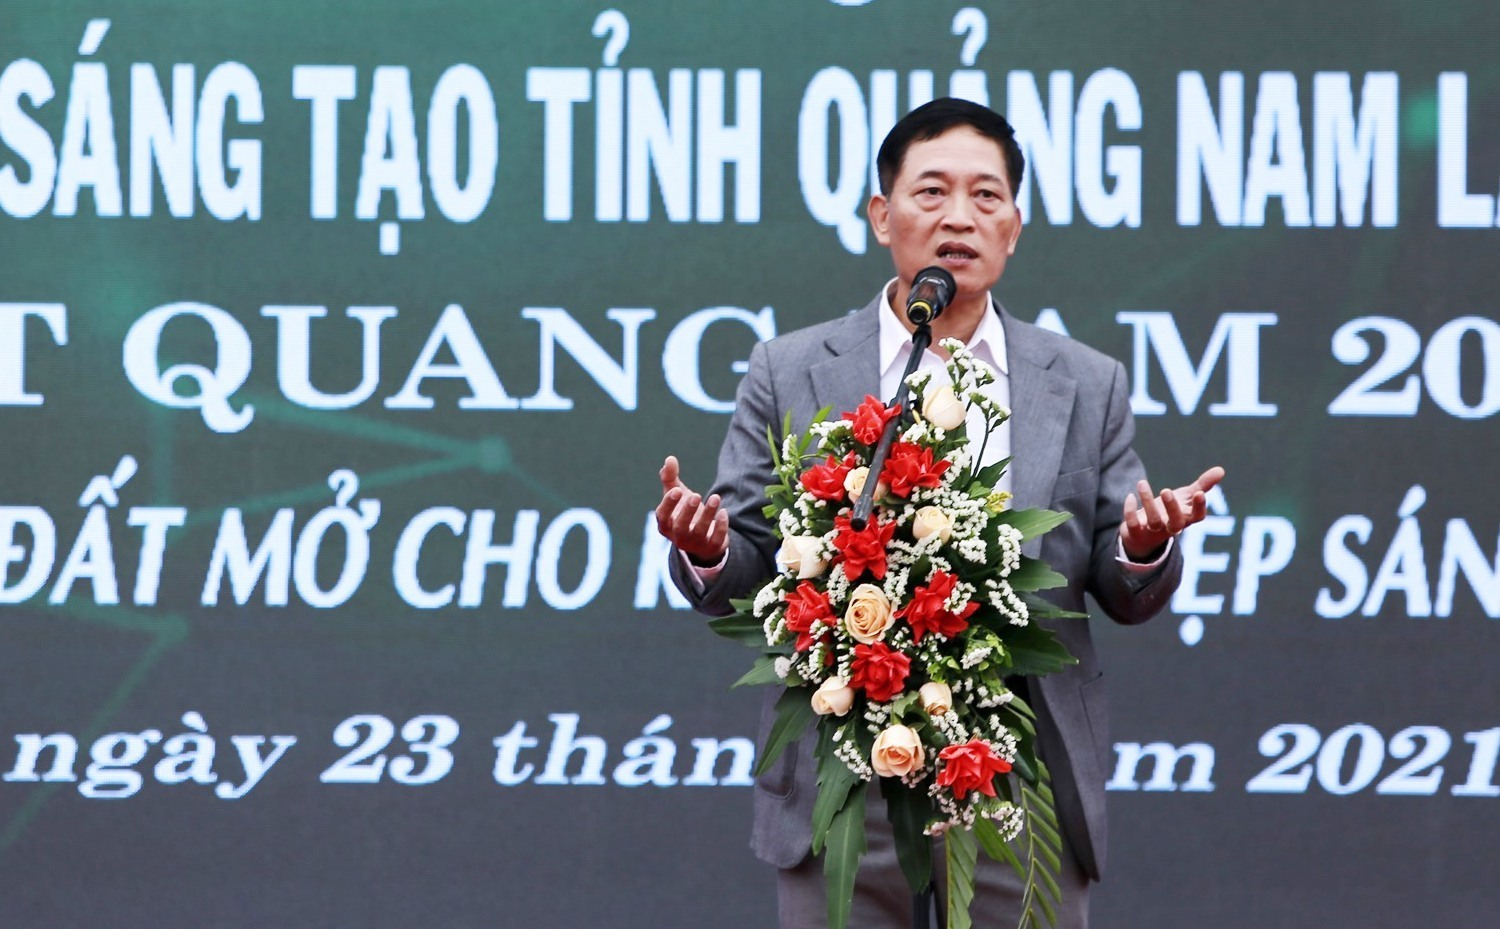 Deputy Minister of Science and Technology of Vietnam Tran Van Tung at TechFest Quang Nam 2021